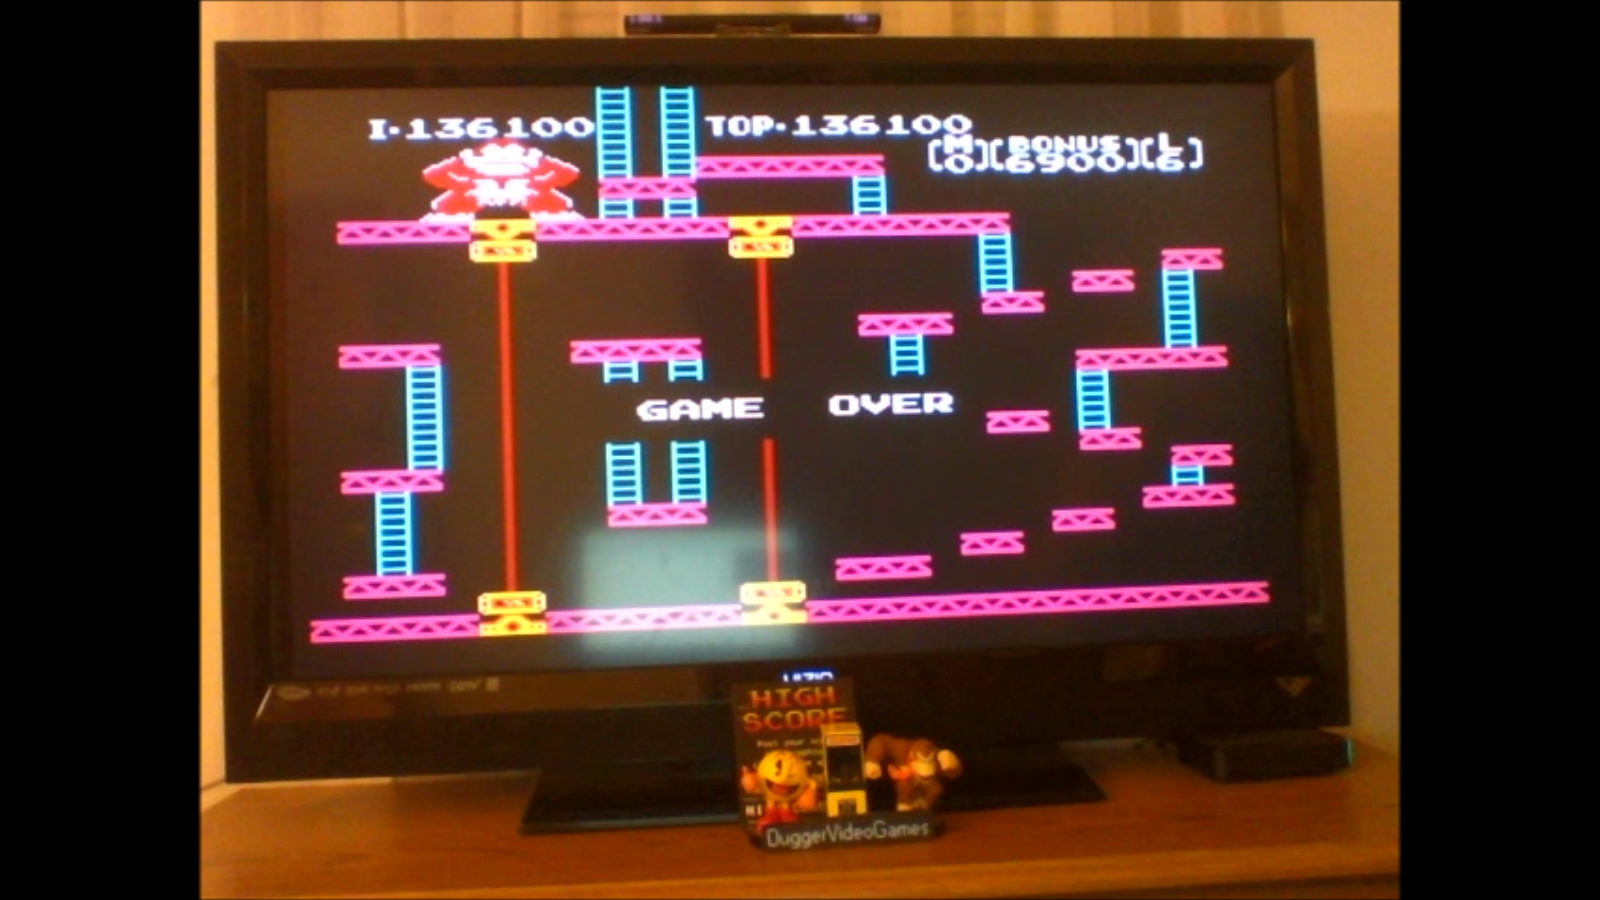 DuggerVideoGames: Donkey Kong: Game B (NES/Famicom Emulated) 136,100 points on 2017-02-17 20:32:33